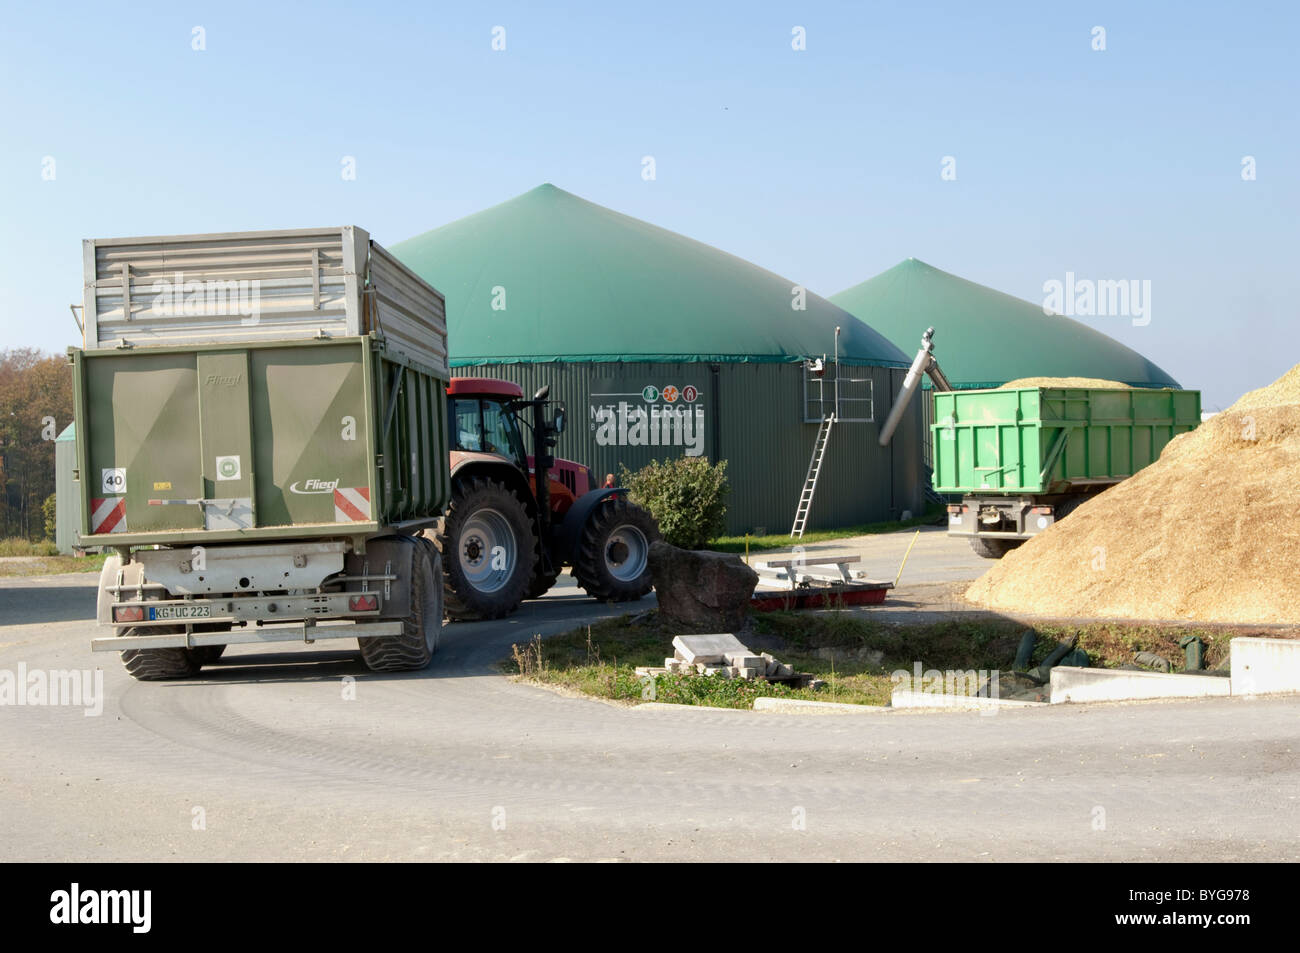 Maize, Corn (Zea mays). Fresh chopped maize being brought to an anaerobic digester plant. - Stock Image